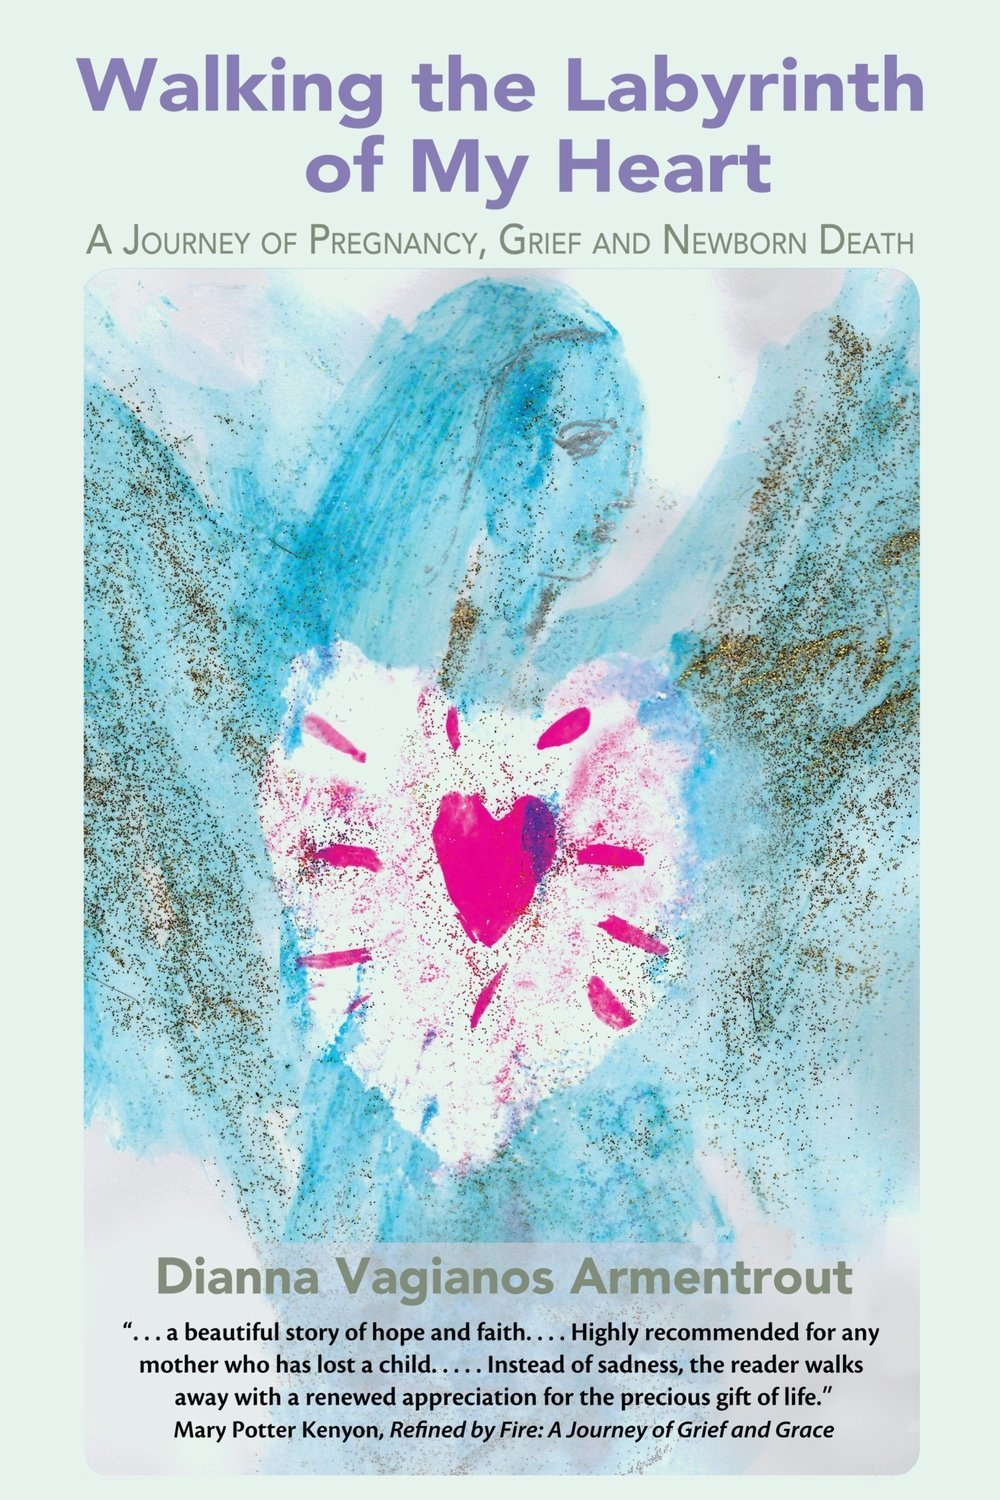 Walking the Labyrinth of My Heart: A Journey of Pregnancy, Grief and Newborn Death - Memoir